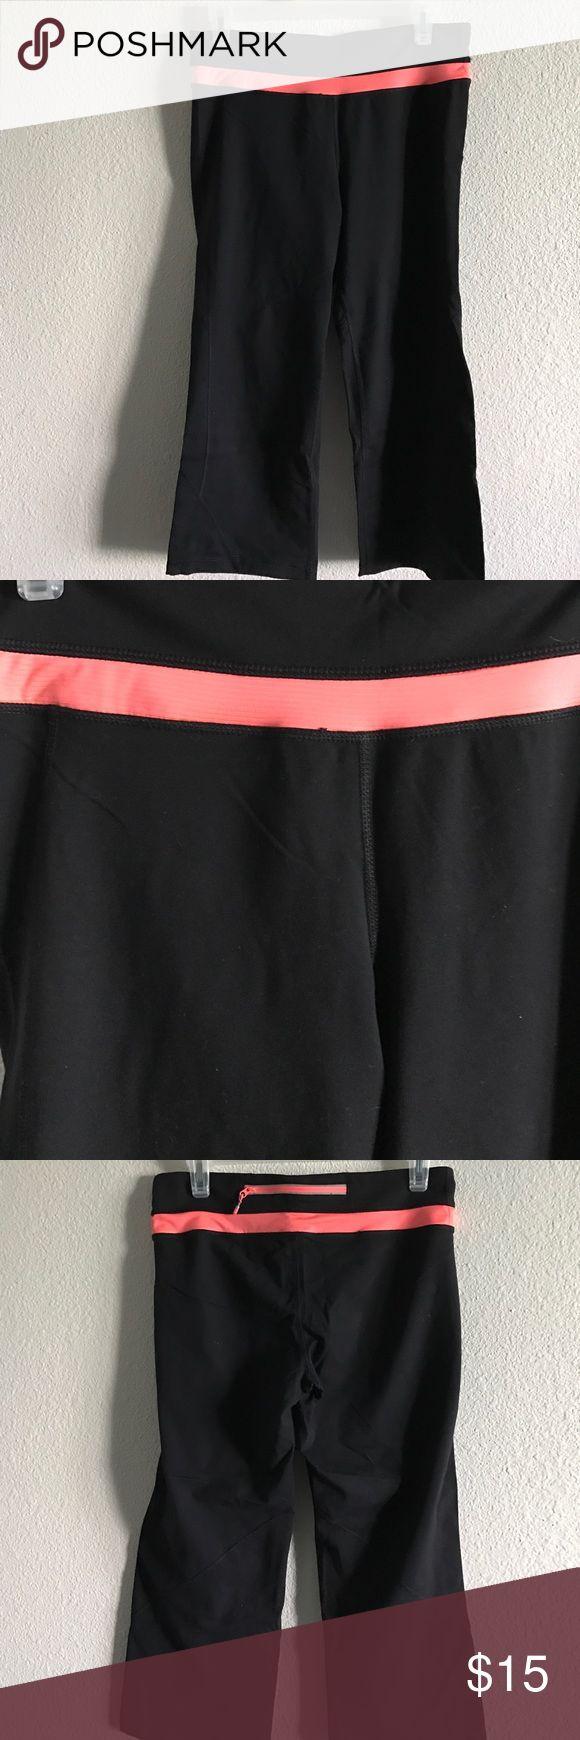 Kirkland Costco Capris Black & Pink Size M 🔶Kirkland(Costco) Capris Black/Pink🔶 🔶Size M🔶 🔶Fabric: 87% Nylon 13% Spandex 🔶 🔶worn a couple times🔶 🔶Zipper in back to hold personal items like keys🔶  🔶NO damage, snags, stains SMOKE FREE HOME🔶 Kirkland Other